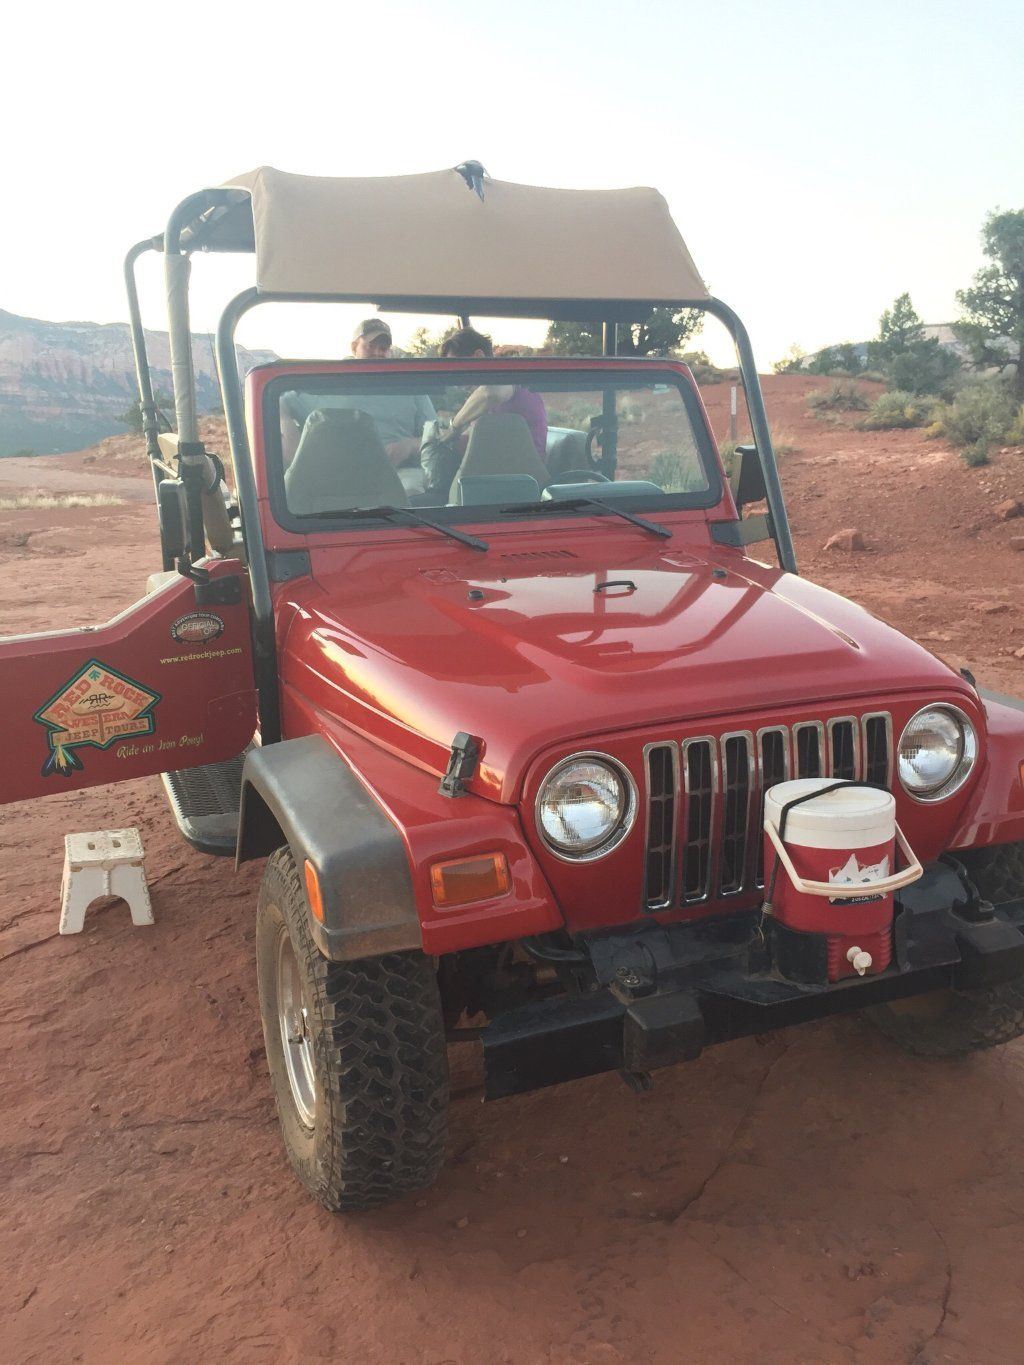 **Red Rock Jeep Tours (Sedona, AZ): Top Tips Before You Go   TripAdvisor